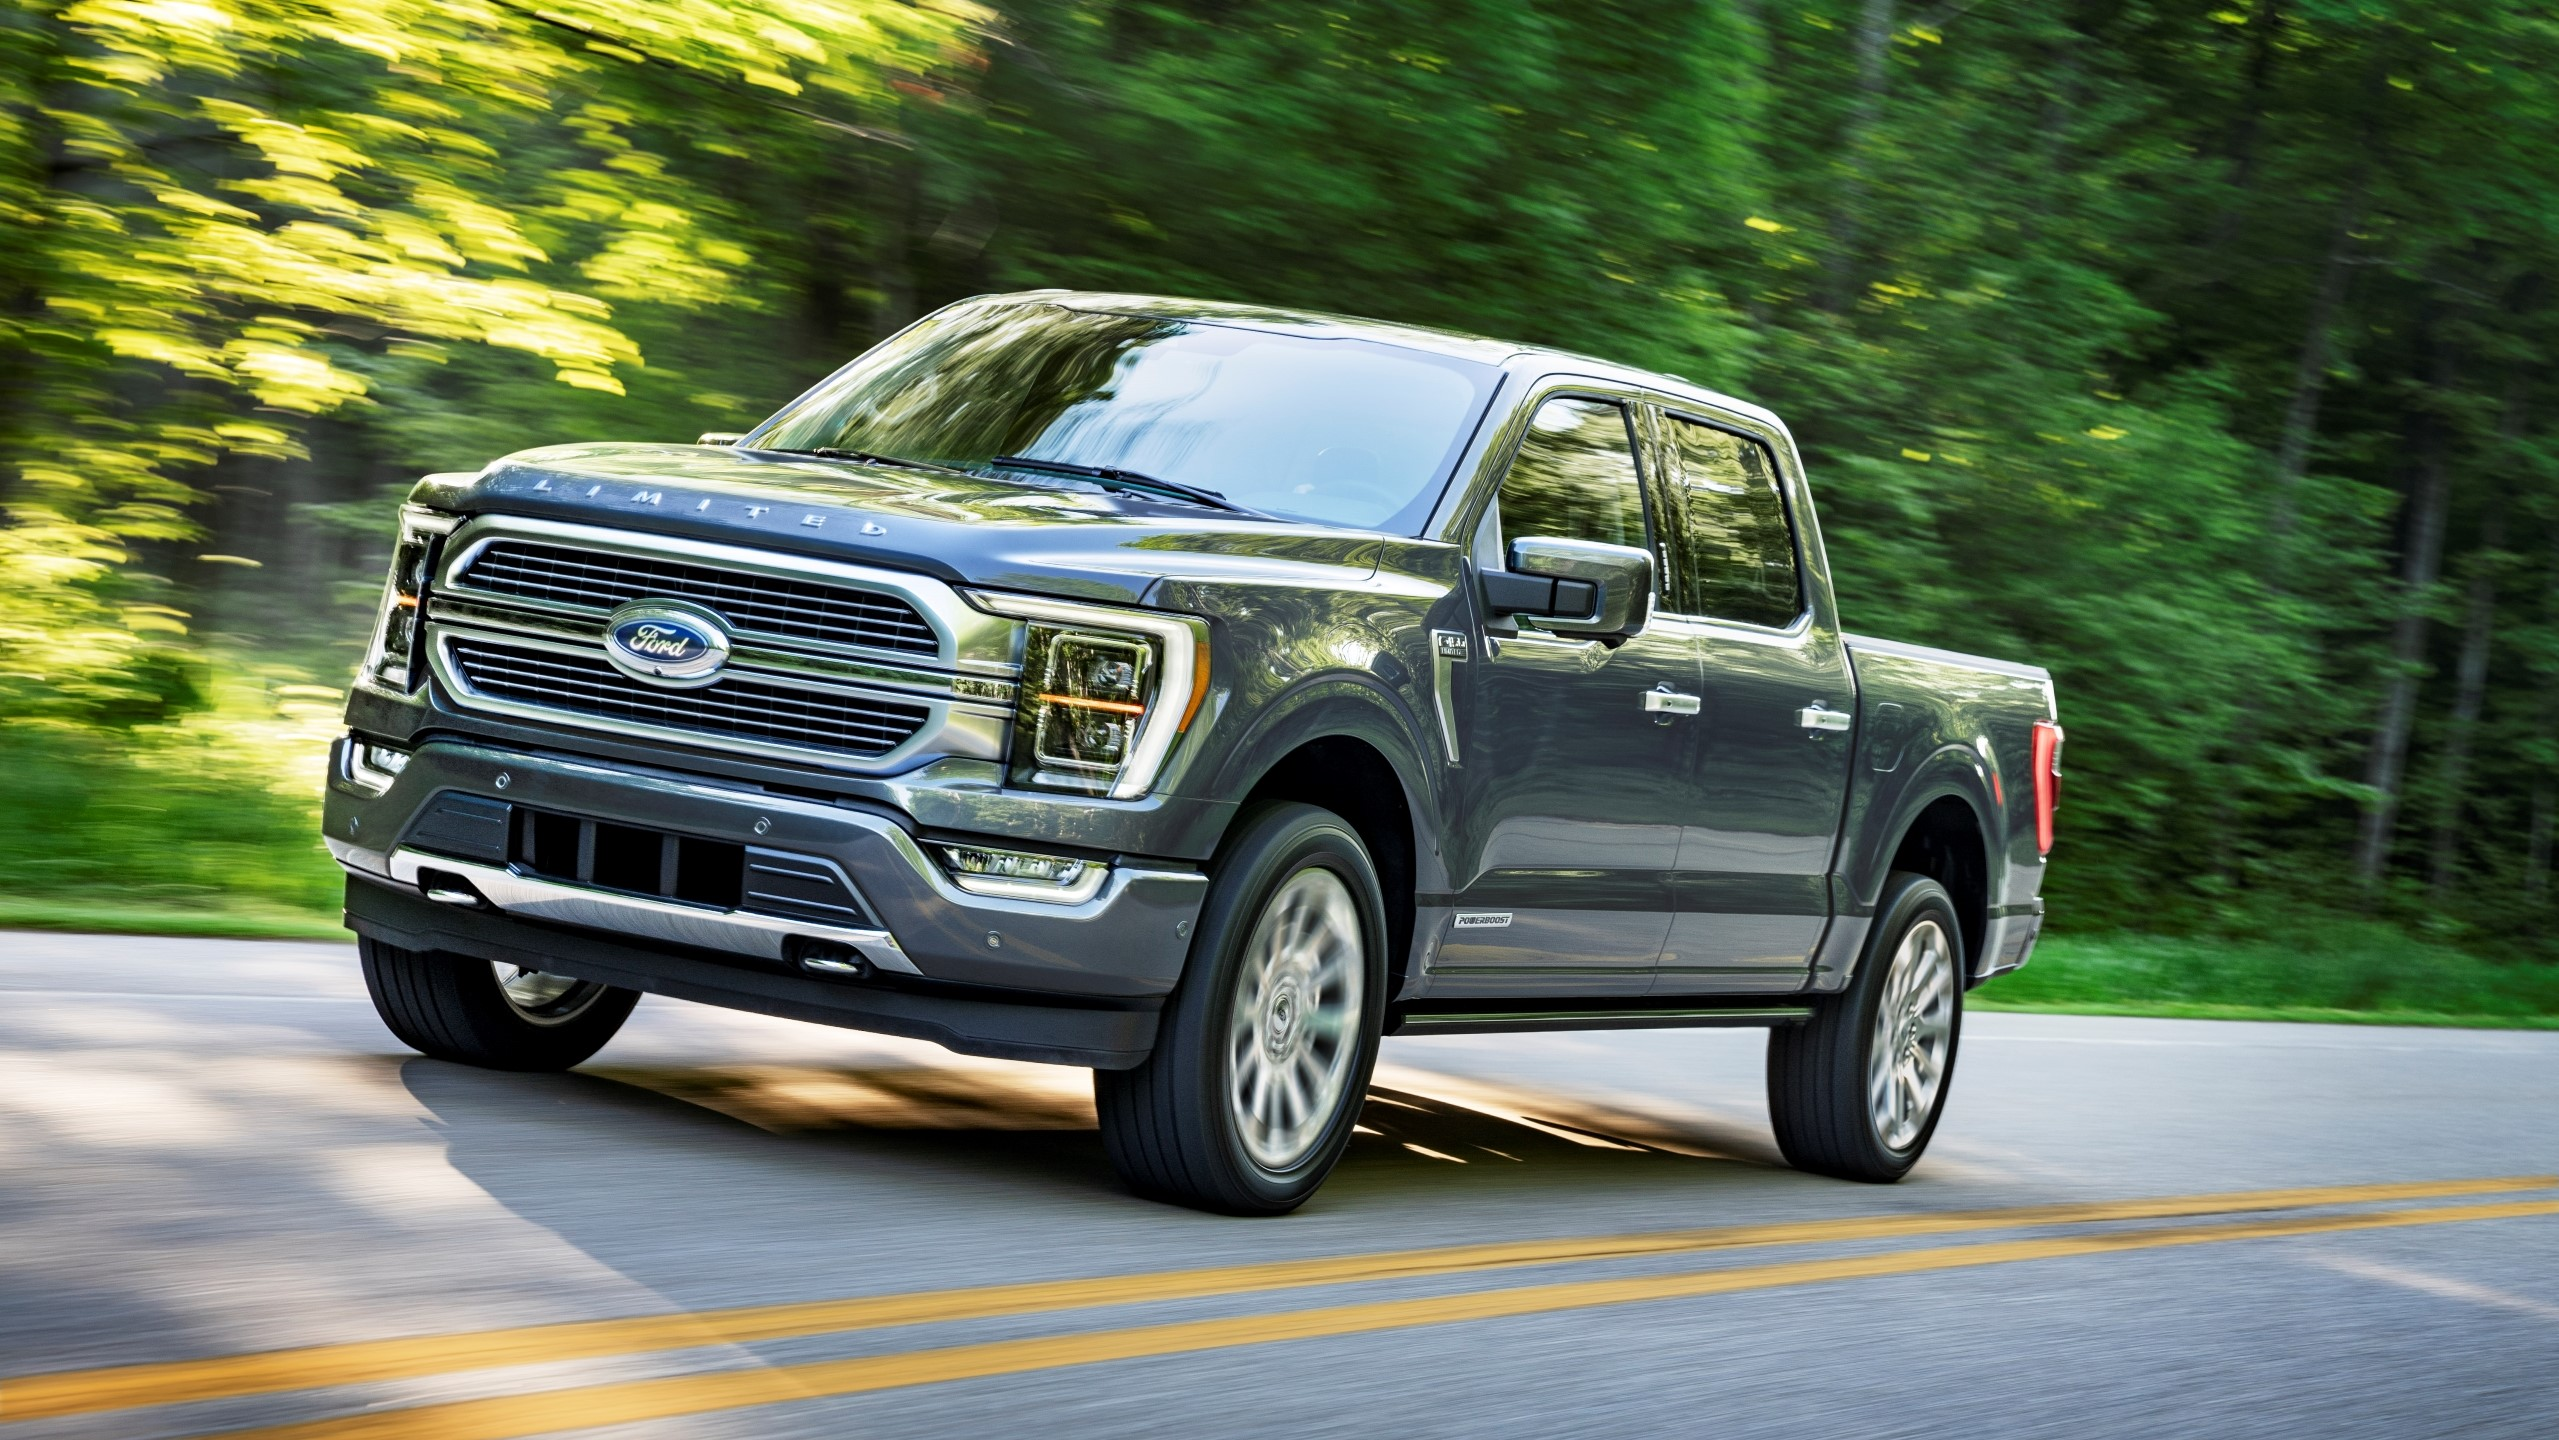 Global Chip Shortage to Affect Production of Ford's F-150